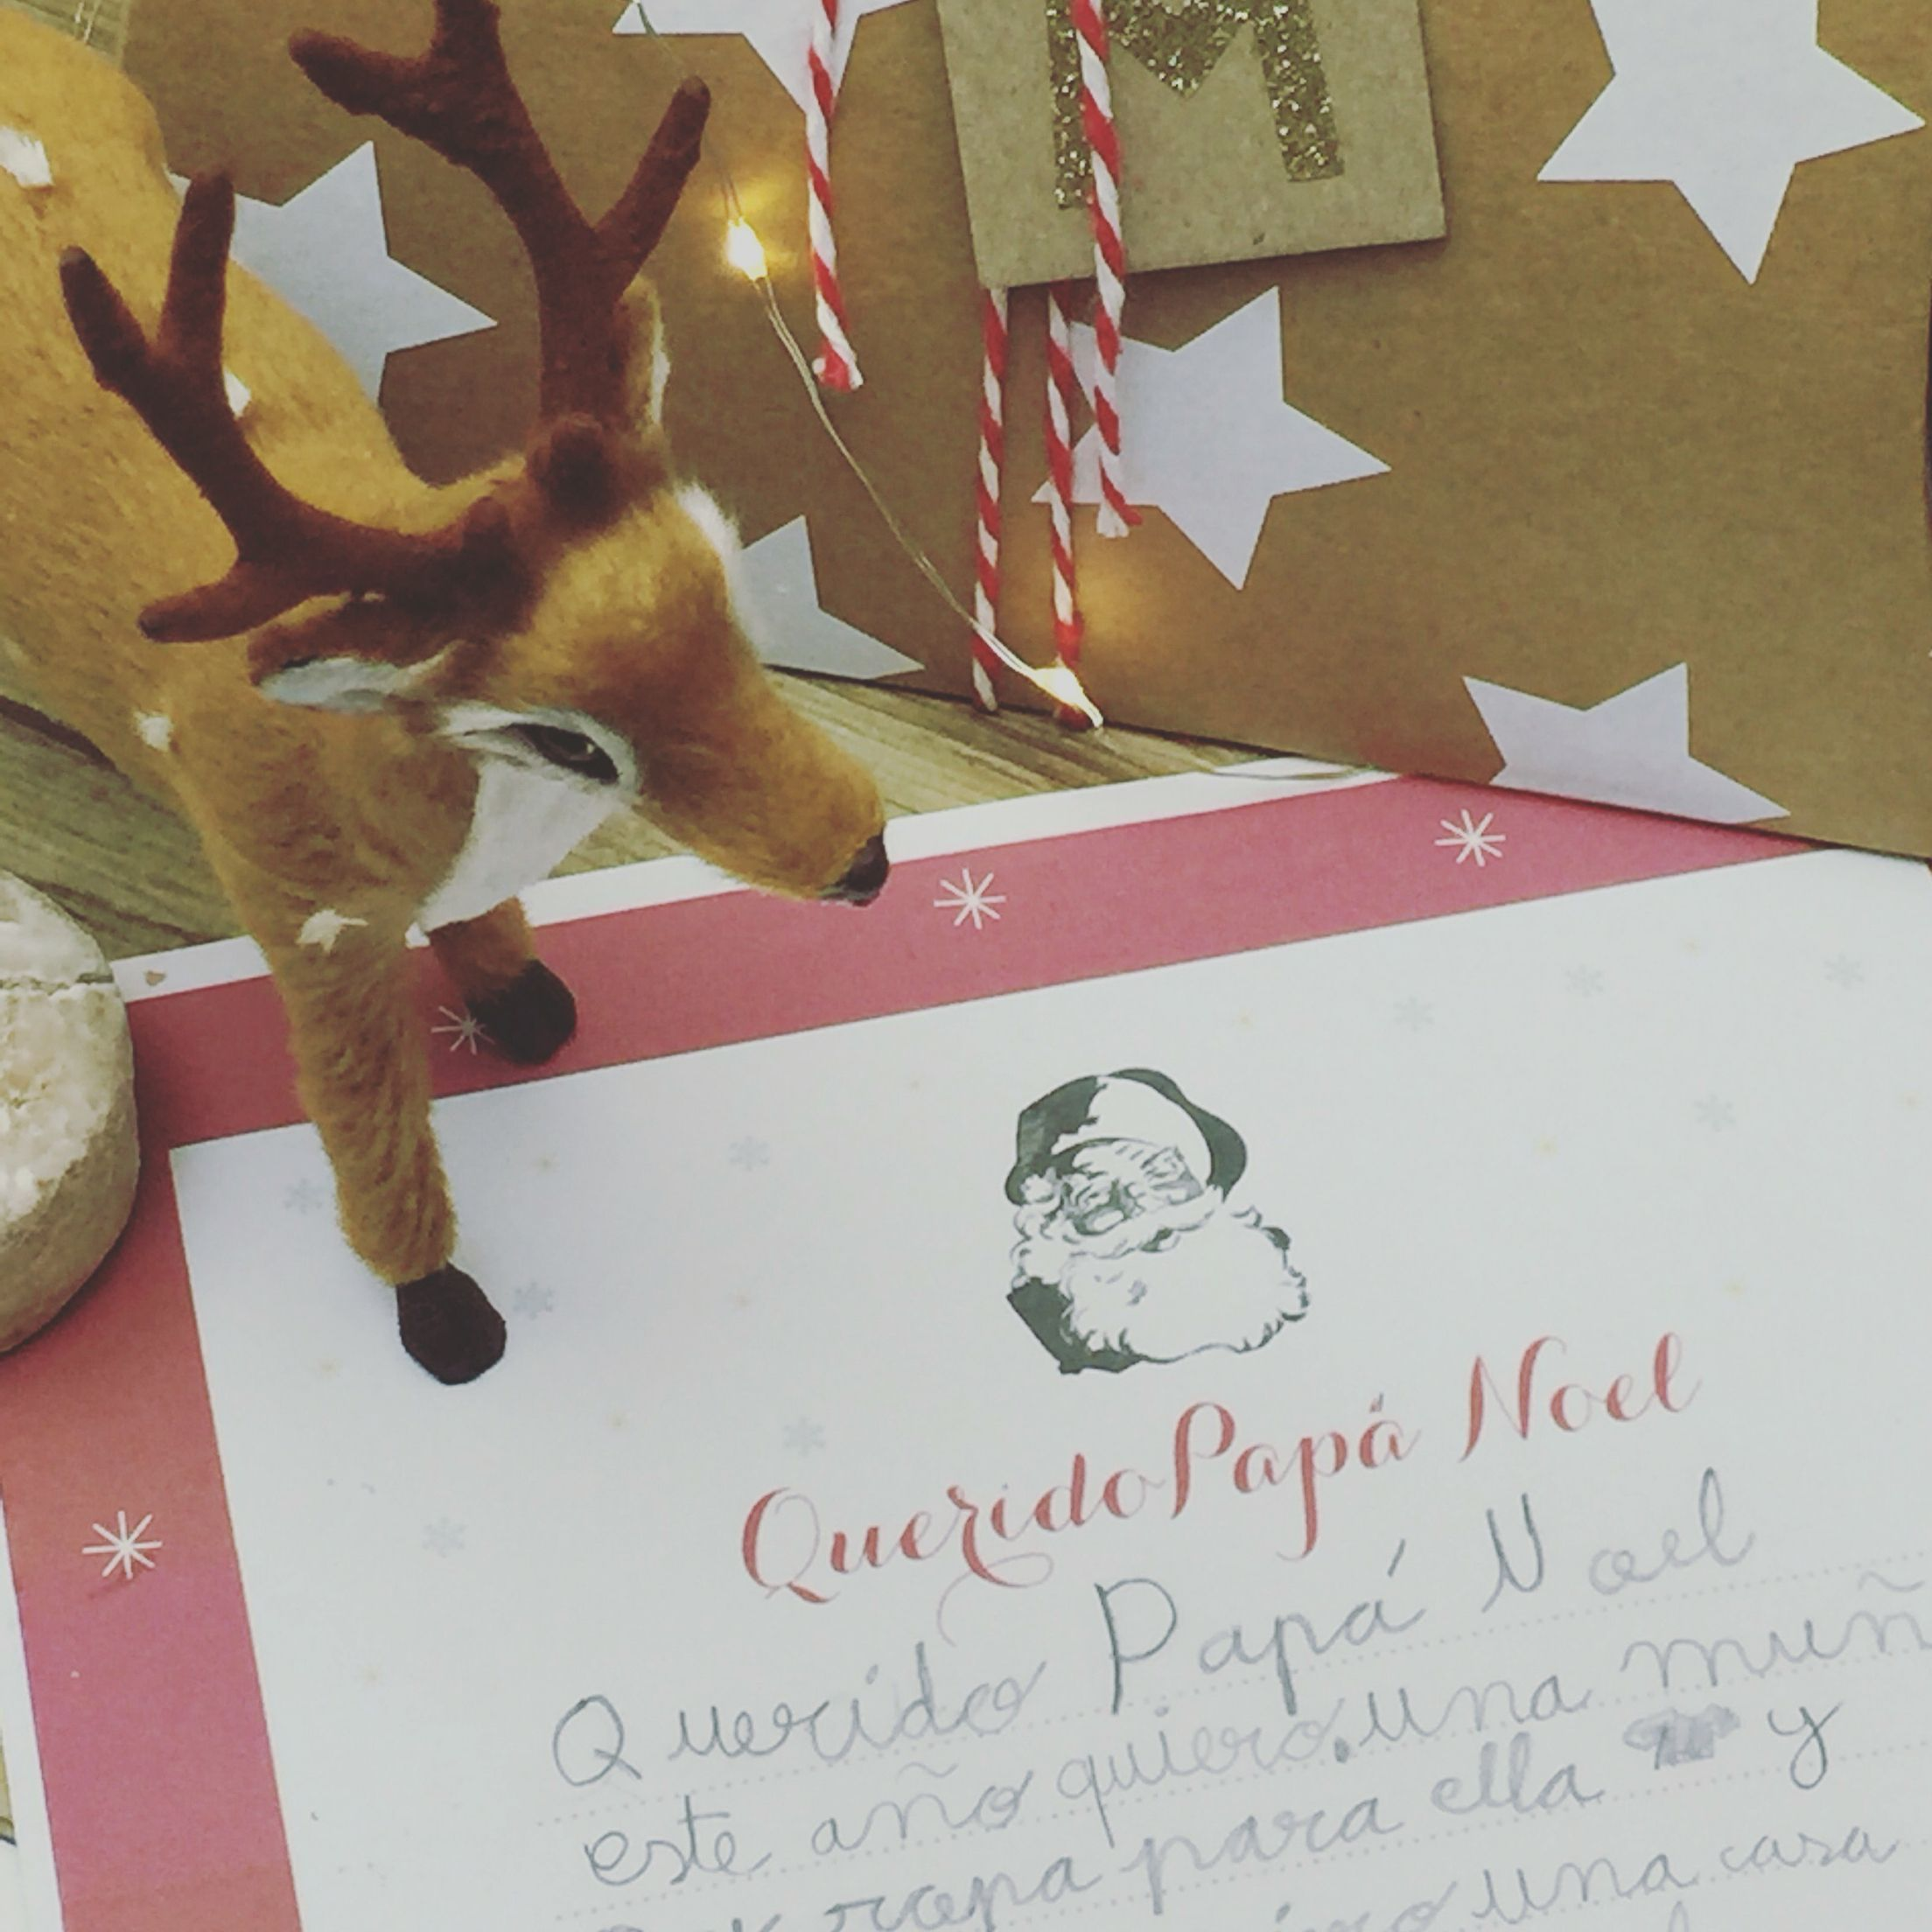 Carta papa Noel descarga gratis #freeprintable